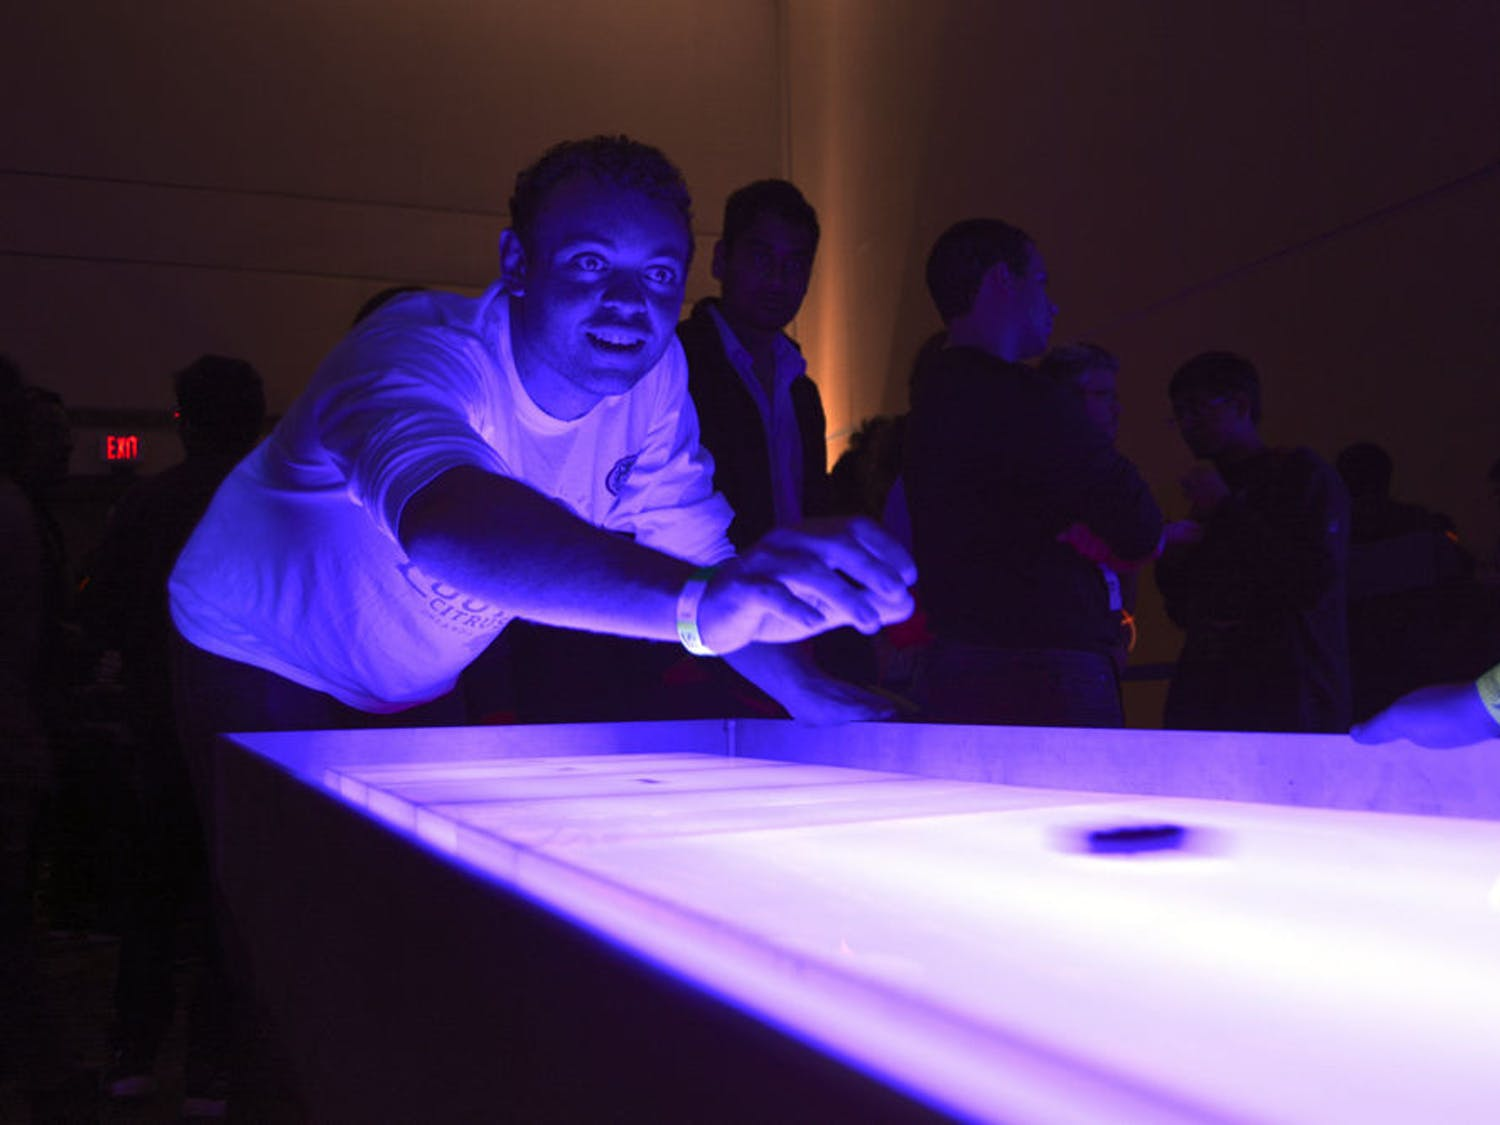 Zackery Bobb, a 19-year-old UF chemical engineering freshman, slides a disc across a glowing shuffleboard in the Reitz Union during GatorNights on January 8. Bobb said his friends convinced him to go.